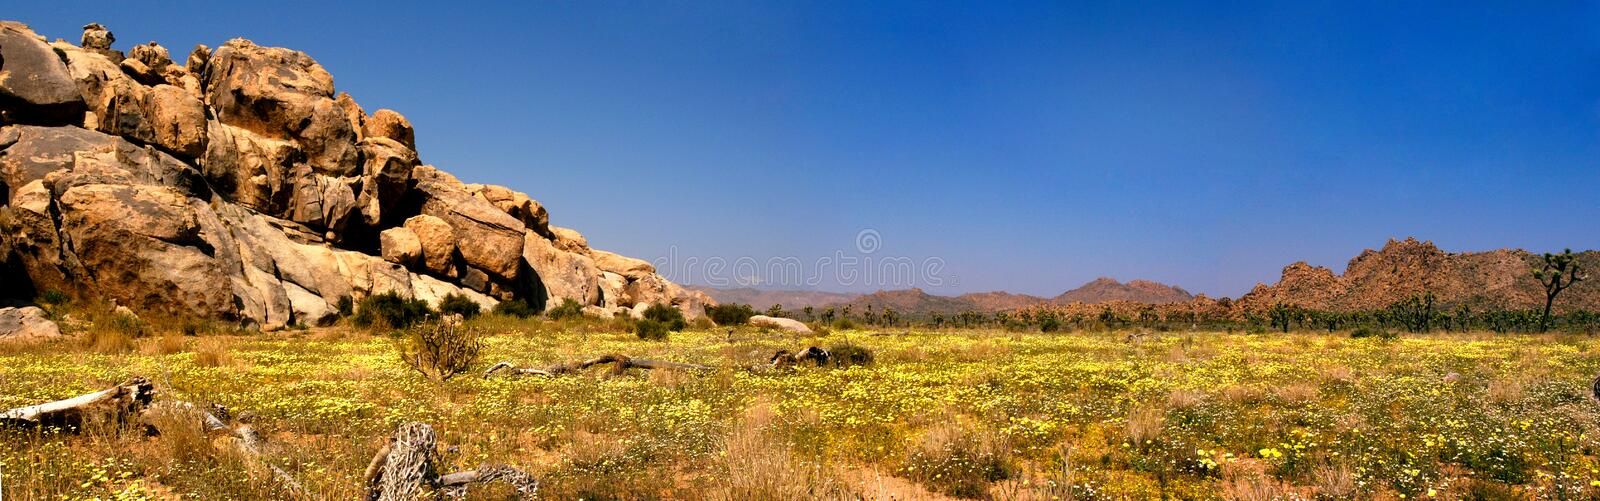 A panoramic view of Joshua Tree National Park after the spring rains and a carpet of yellow flowers blooming. After the spring rains come the desert flowers and royalty free stock image